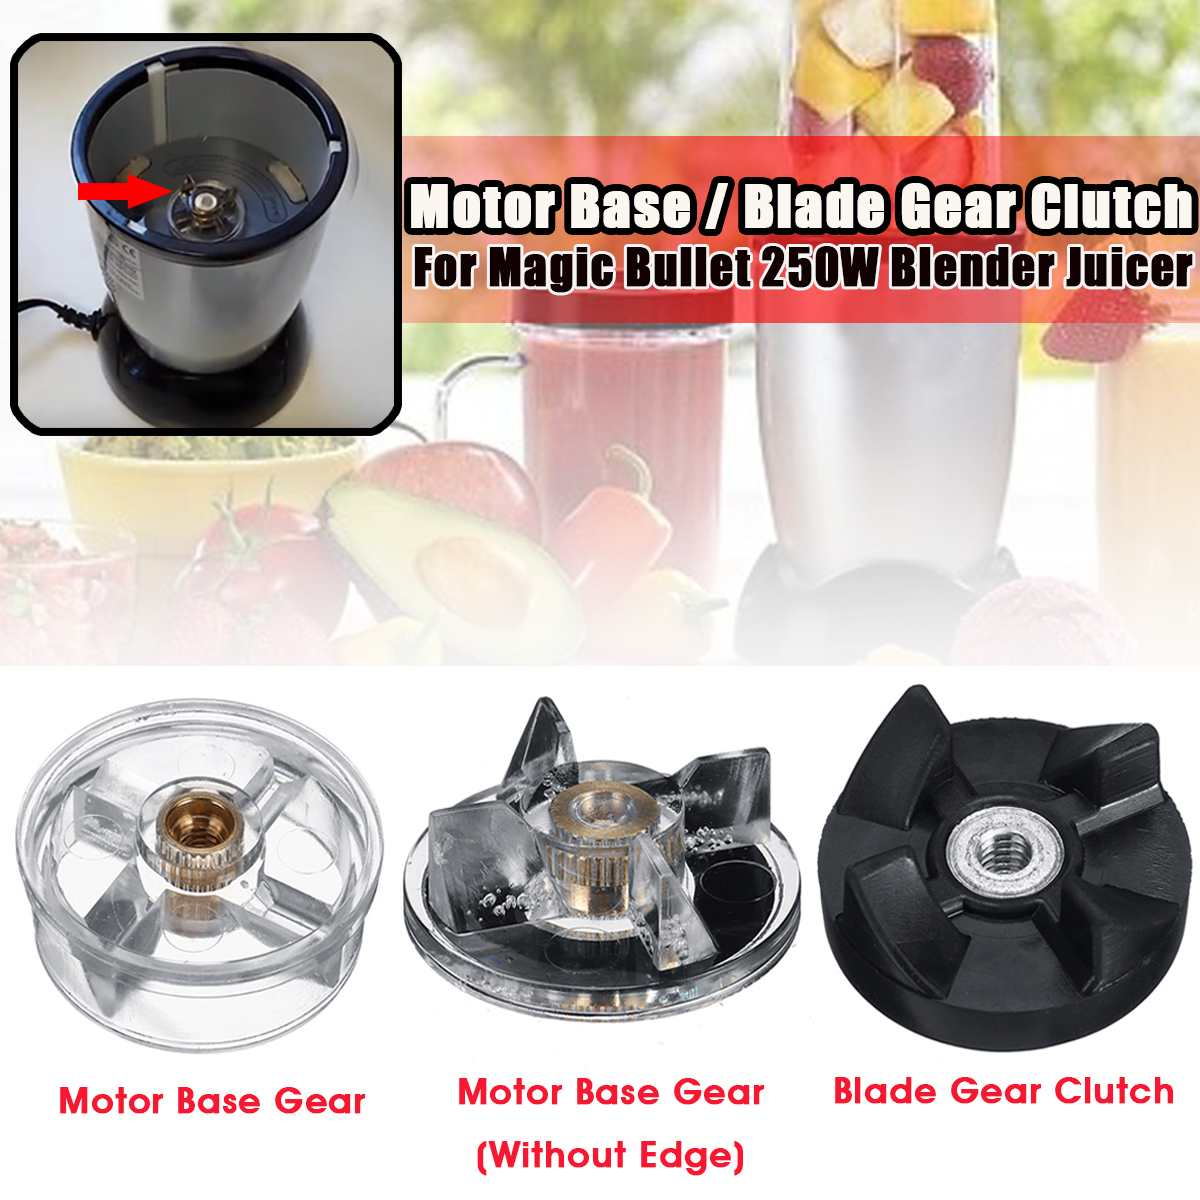 1Pc Juicer Blade Gears Spare Parts Replacement Motor Base Blade Gear Clutch For Magic Bullet  Juicer MB1001